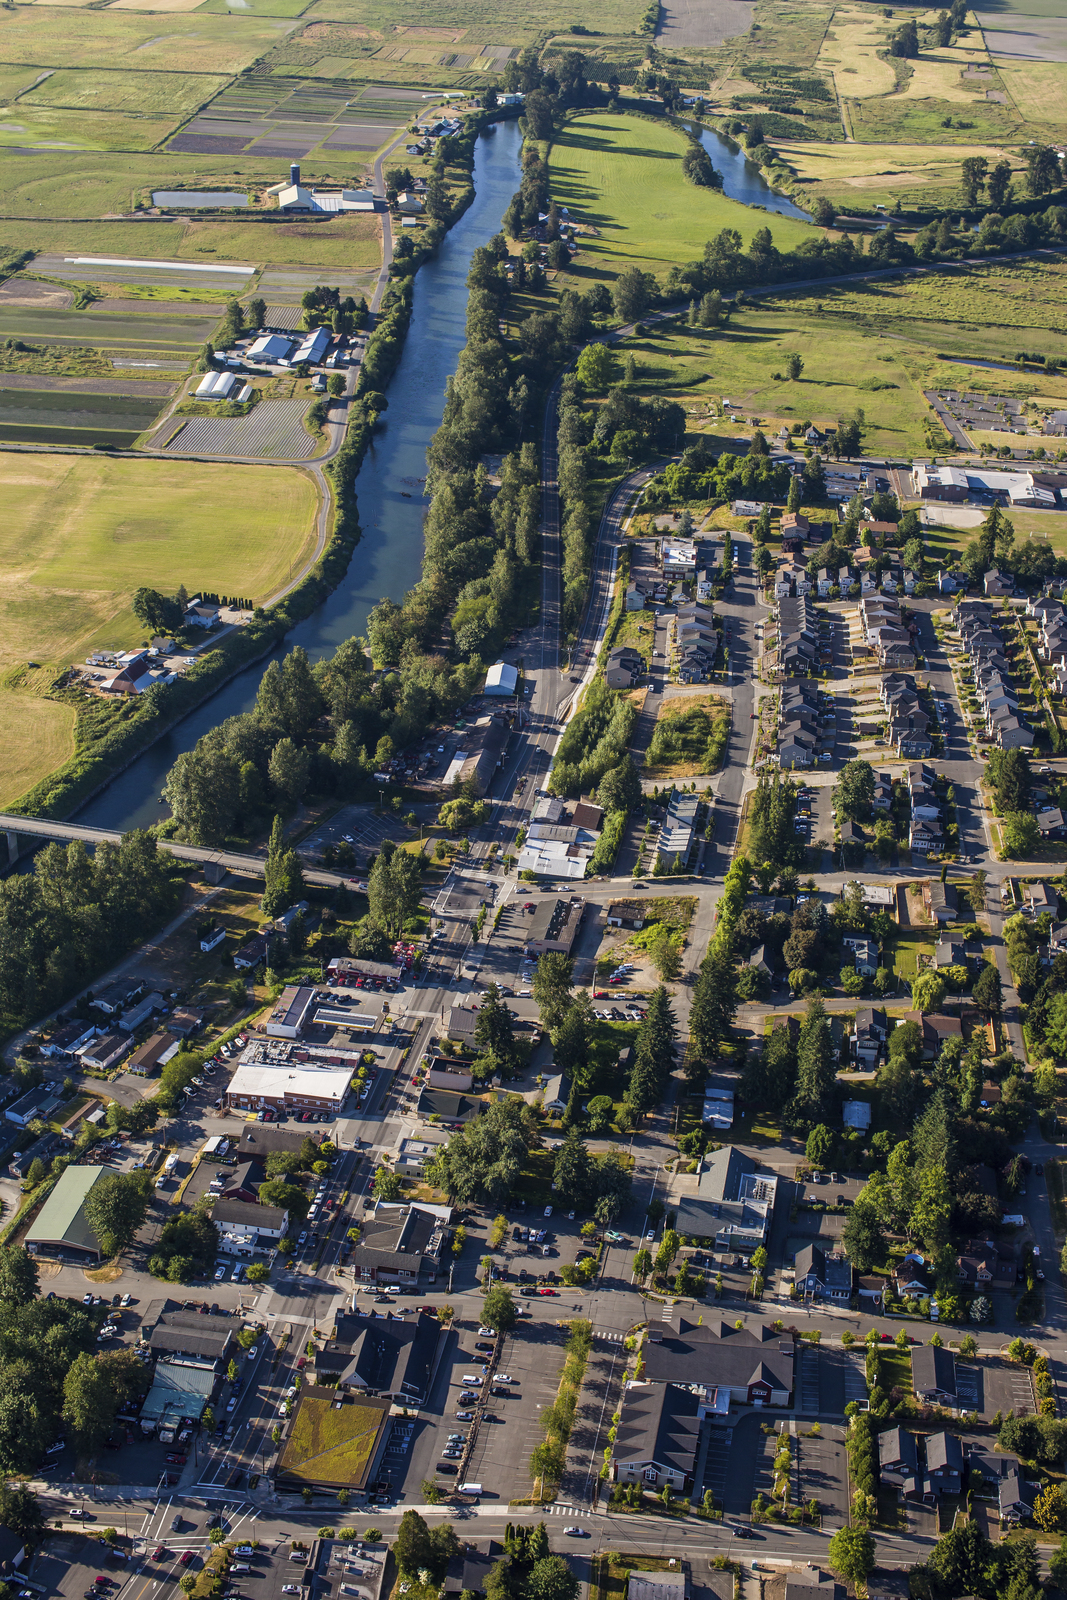 Complex and varied land uses in the Snohomish River basin call for collaborative partnerships that bring many voices to the table. Photo by Paul Joseph Brown.